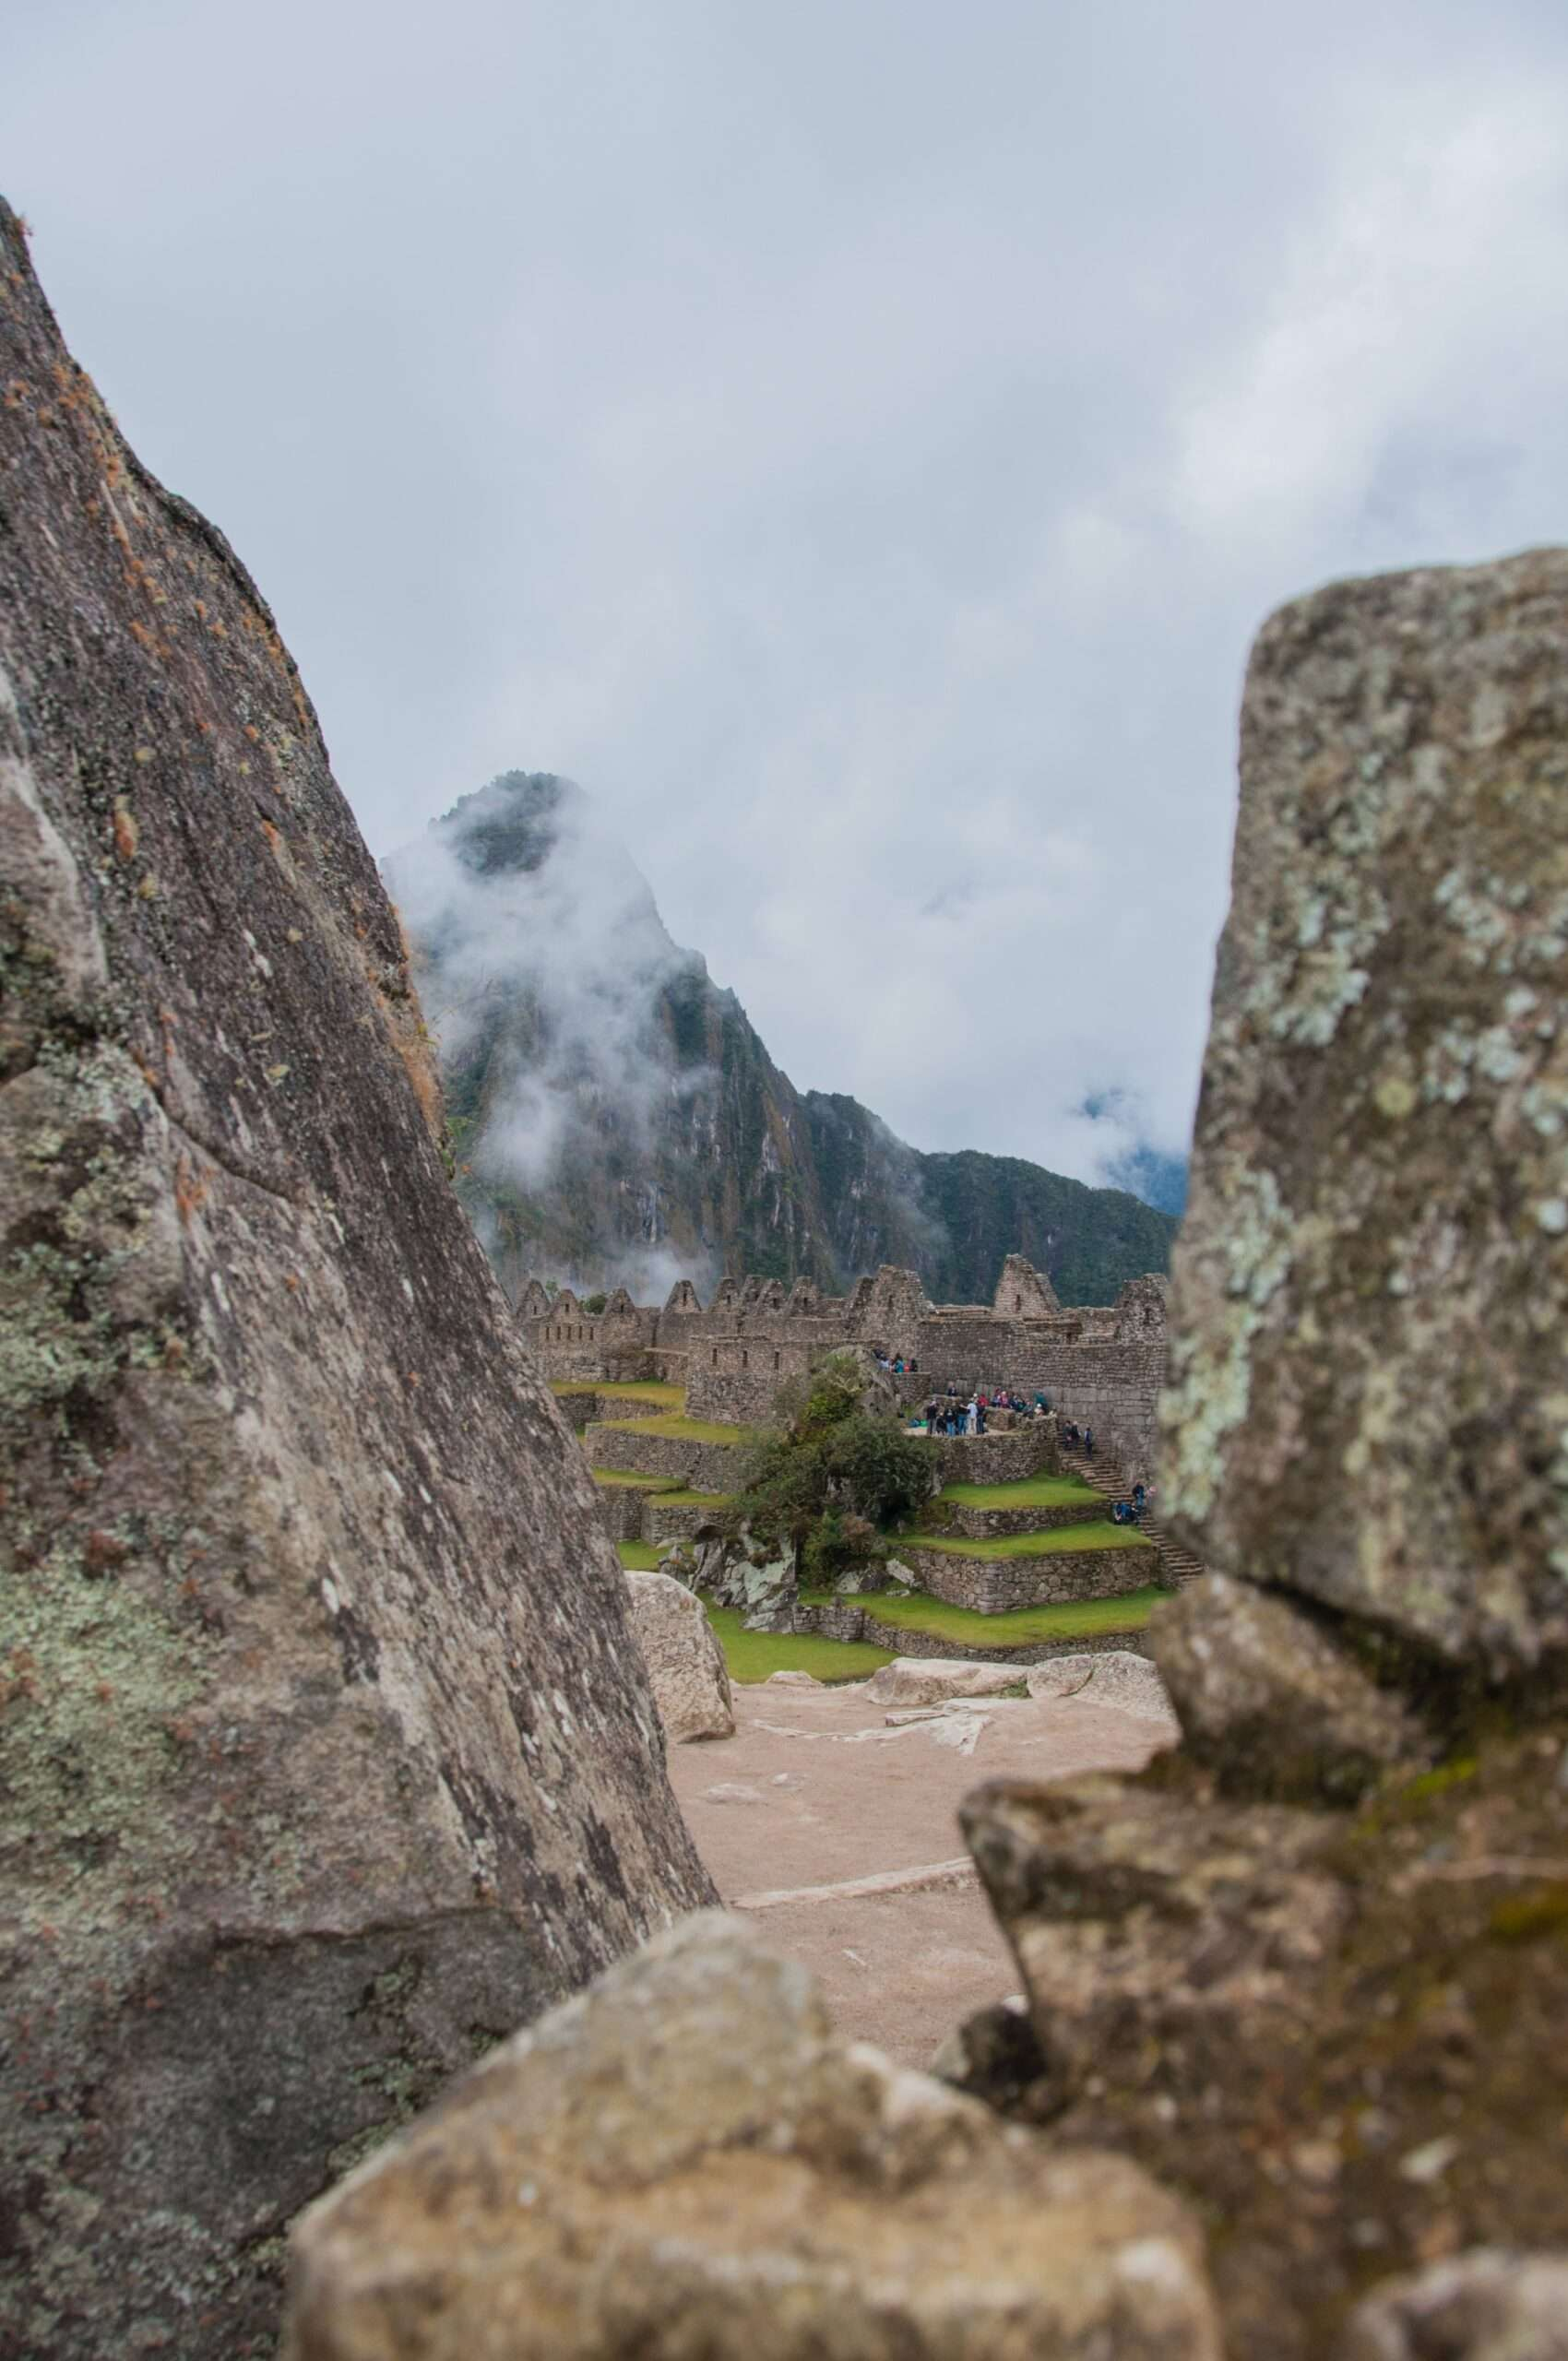 looking through a gap between large rocks onto the ruins of Machu Picchu at the end of the Salkantay Trek